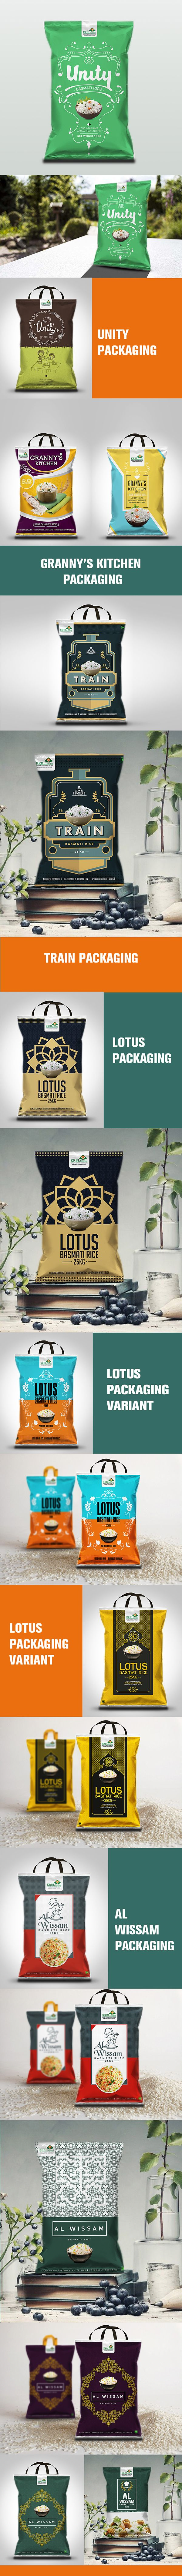 Rice Packaging Designs on Behance by Aditya Chakravarty, New Delhi, India, PD